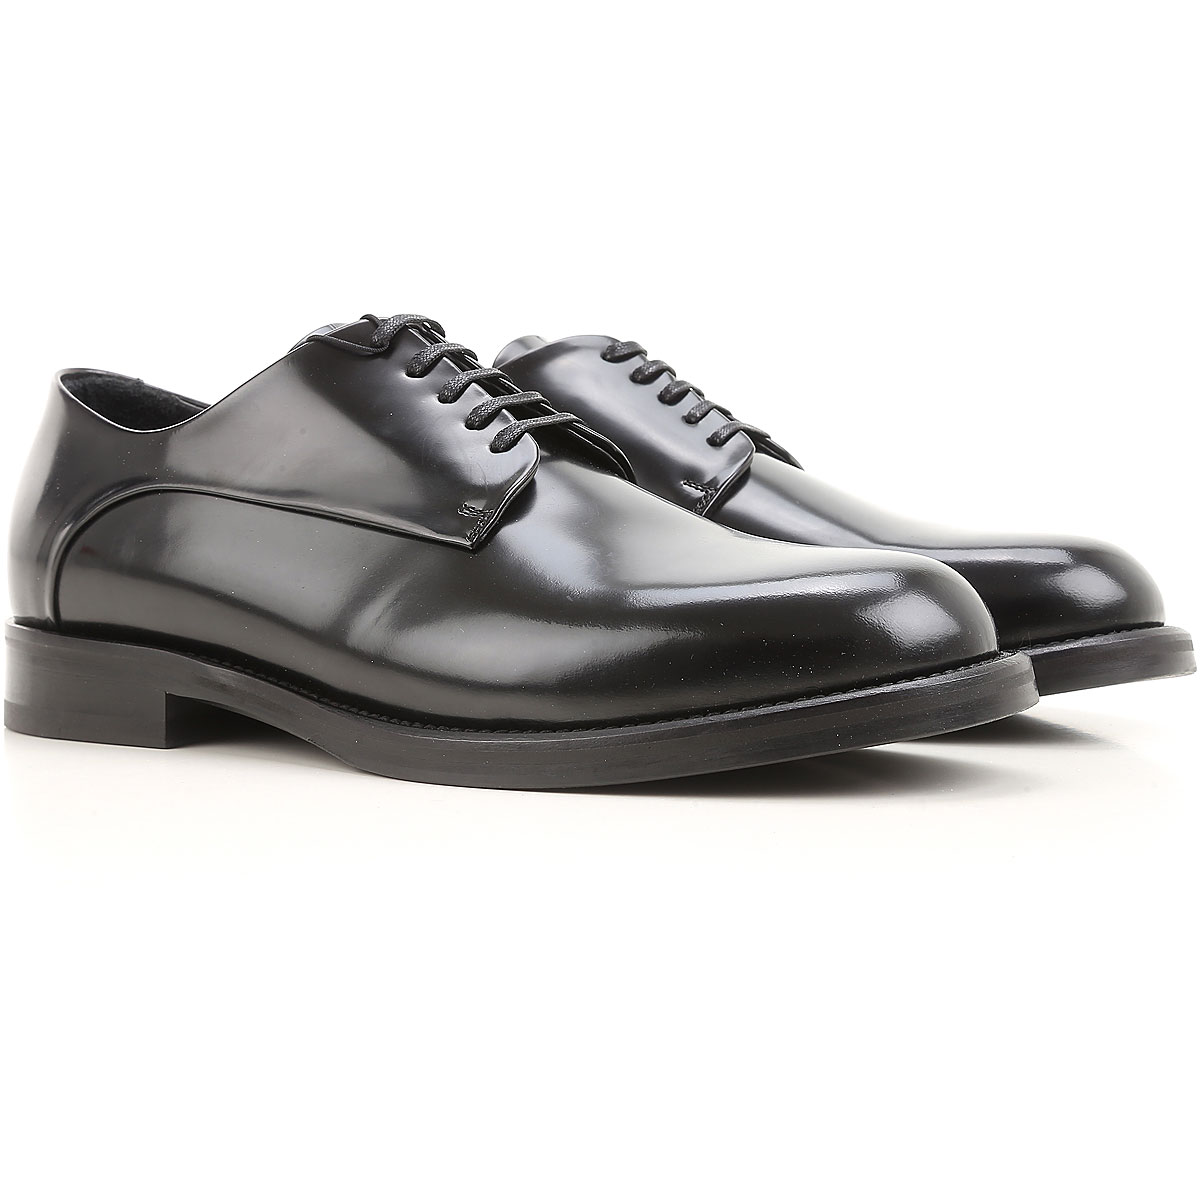 Emporio Armani Lace Up Shoes for Men Oxfords Derbies and Brogues On Sale in Outlet SE - GOOFASH